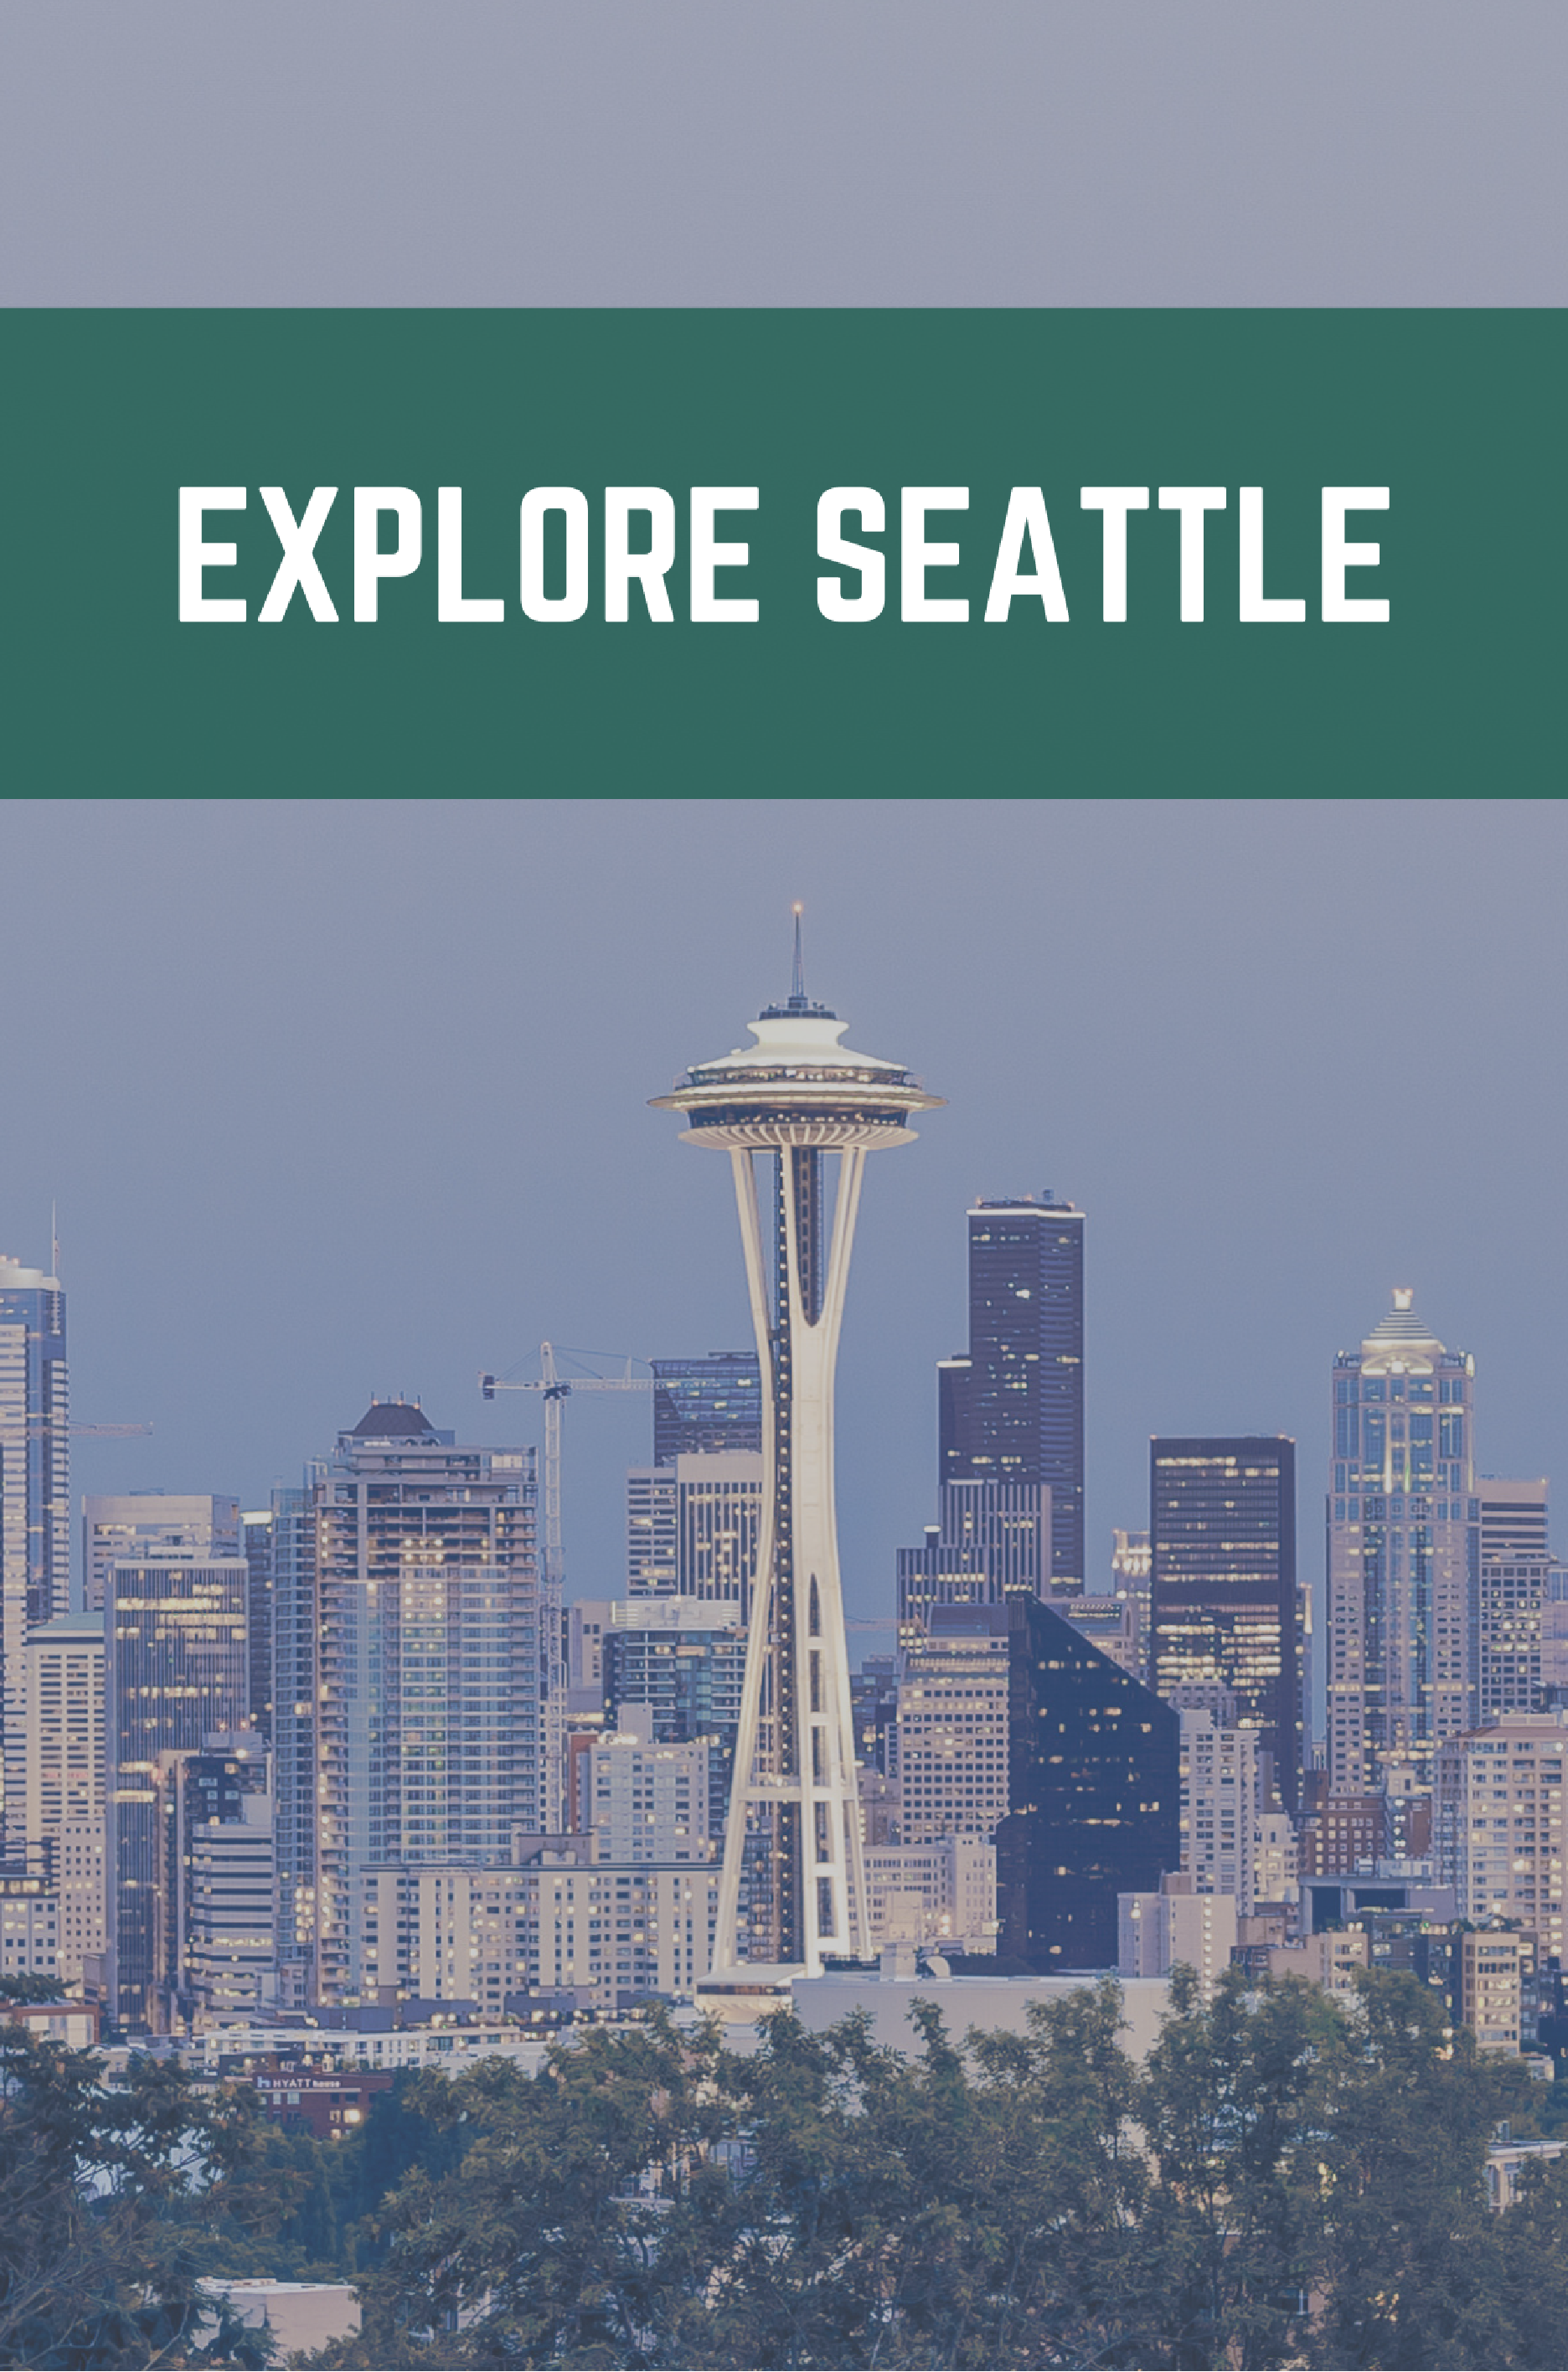 Explore Seattle